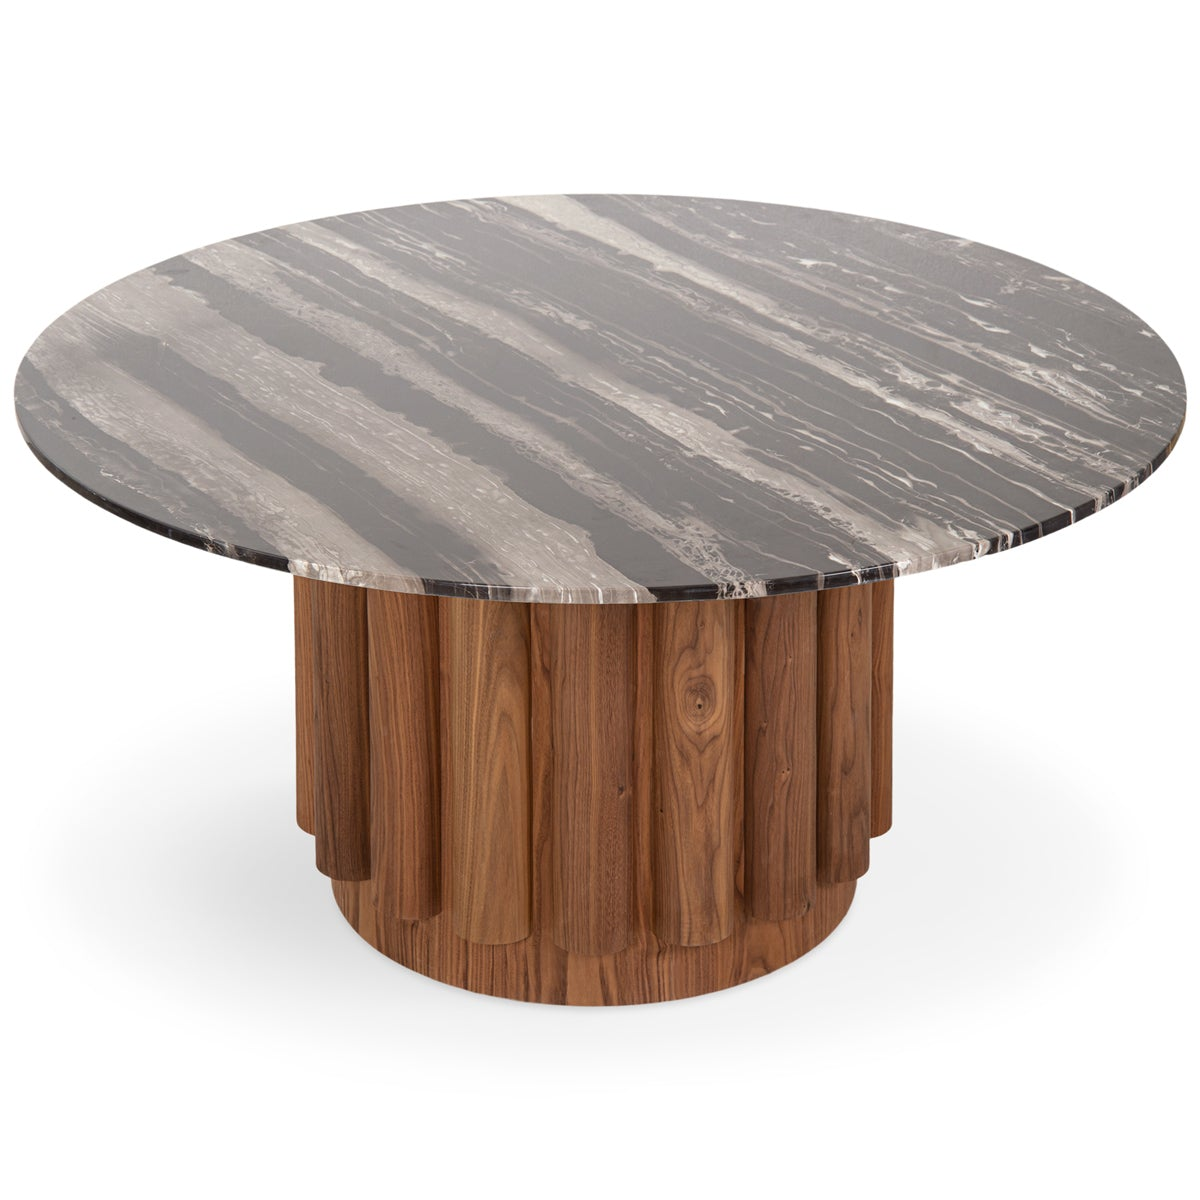 Eden Rock Dining Table in Walnut - ModShop1.com